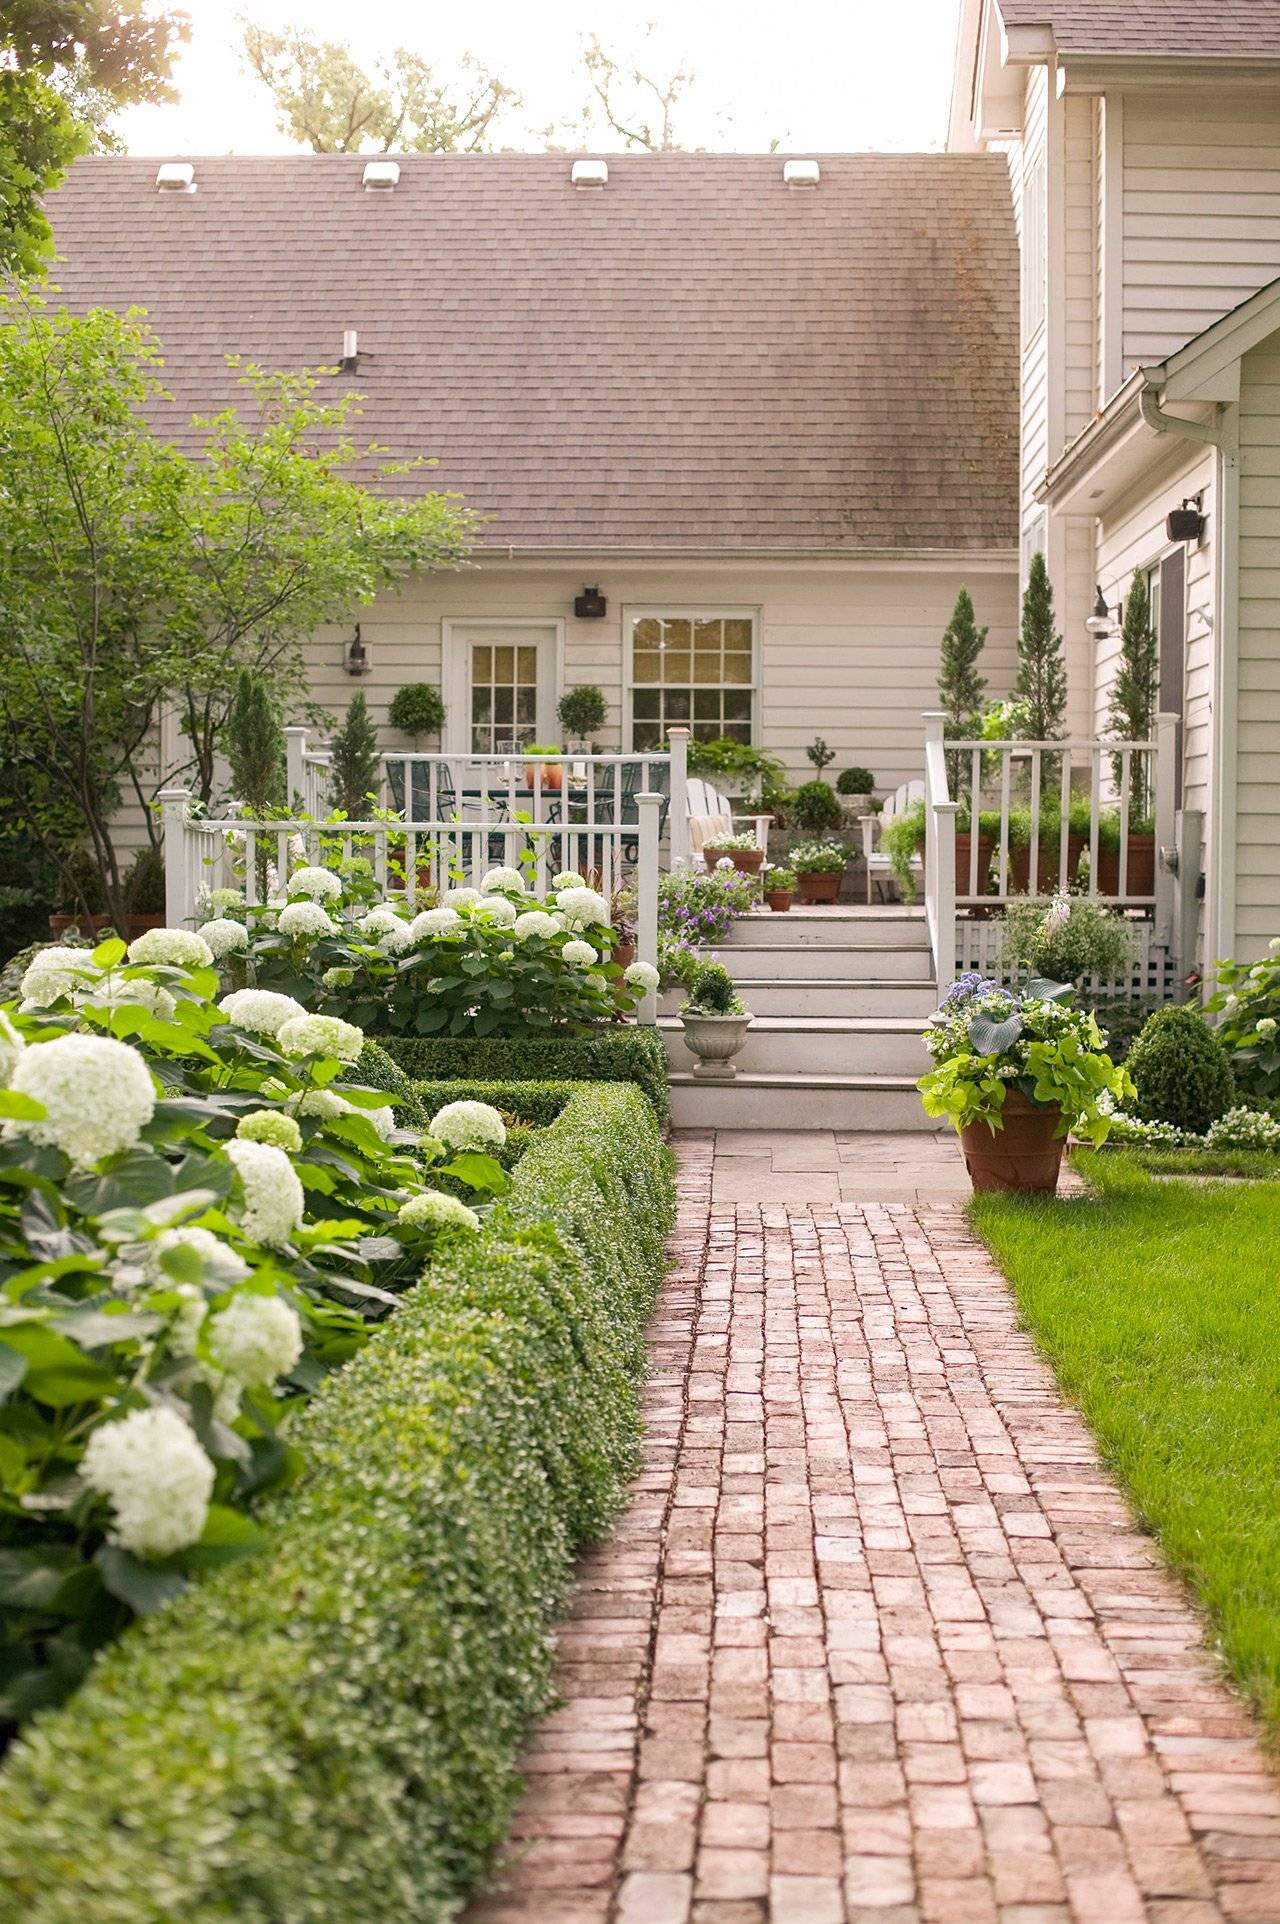 16 simple solutions for small space landscapes outdoor garden landscaping ideas maximize the impact of minimal yards with these yard and backyard